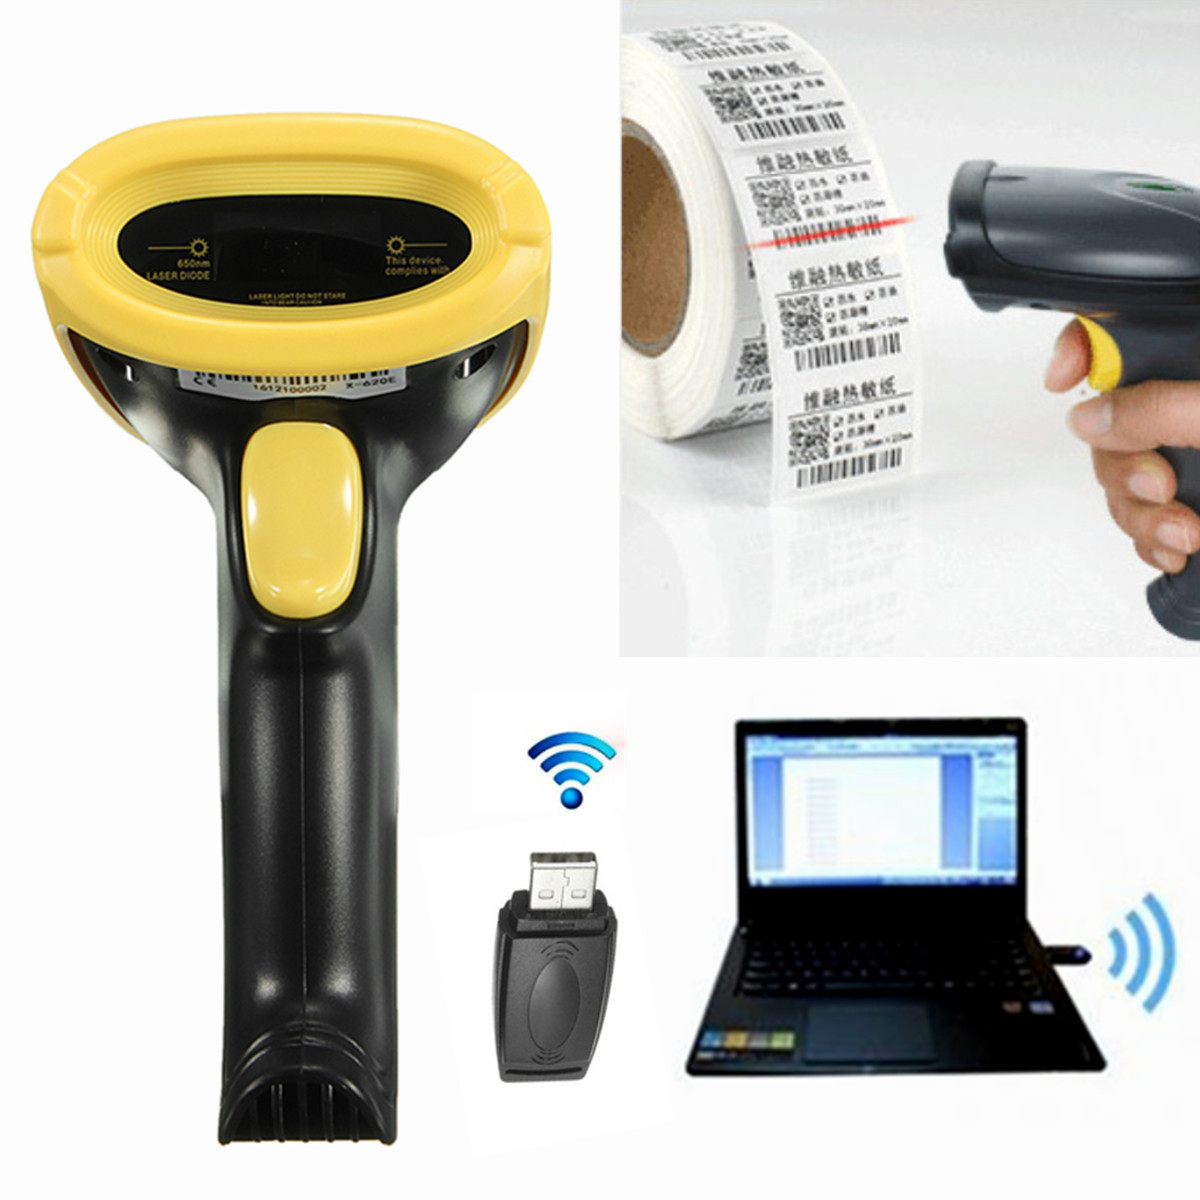 2.4GHz Portable Barcode Scanner USB WIFI Handheld Visible Wireless Laser Cordless Barcode Reader For Supermarket Shop usb laser handheld barcode scanner reader for desktop laptop 2m cable page 8